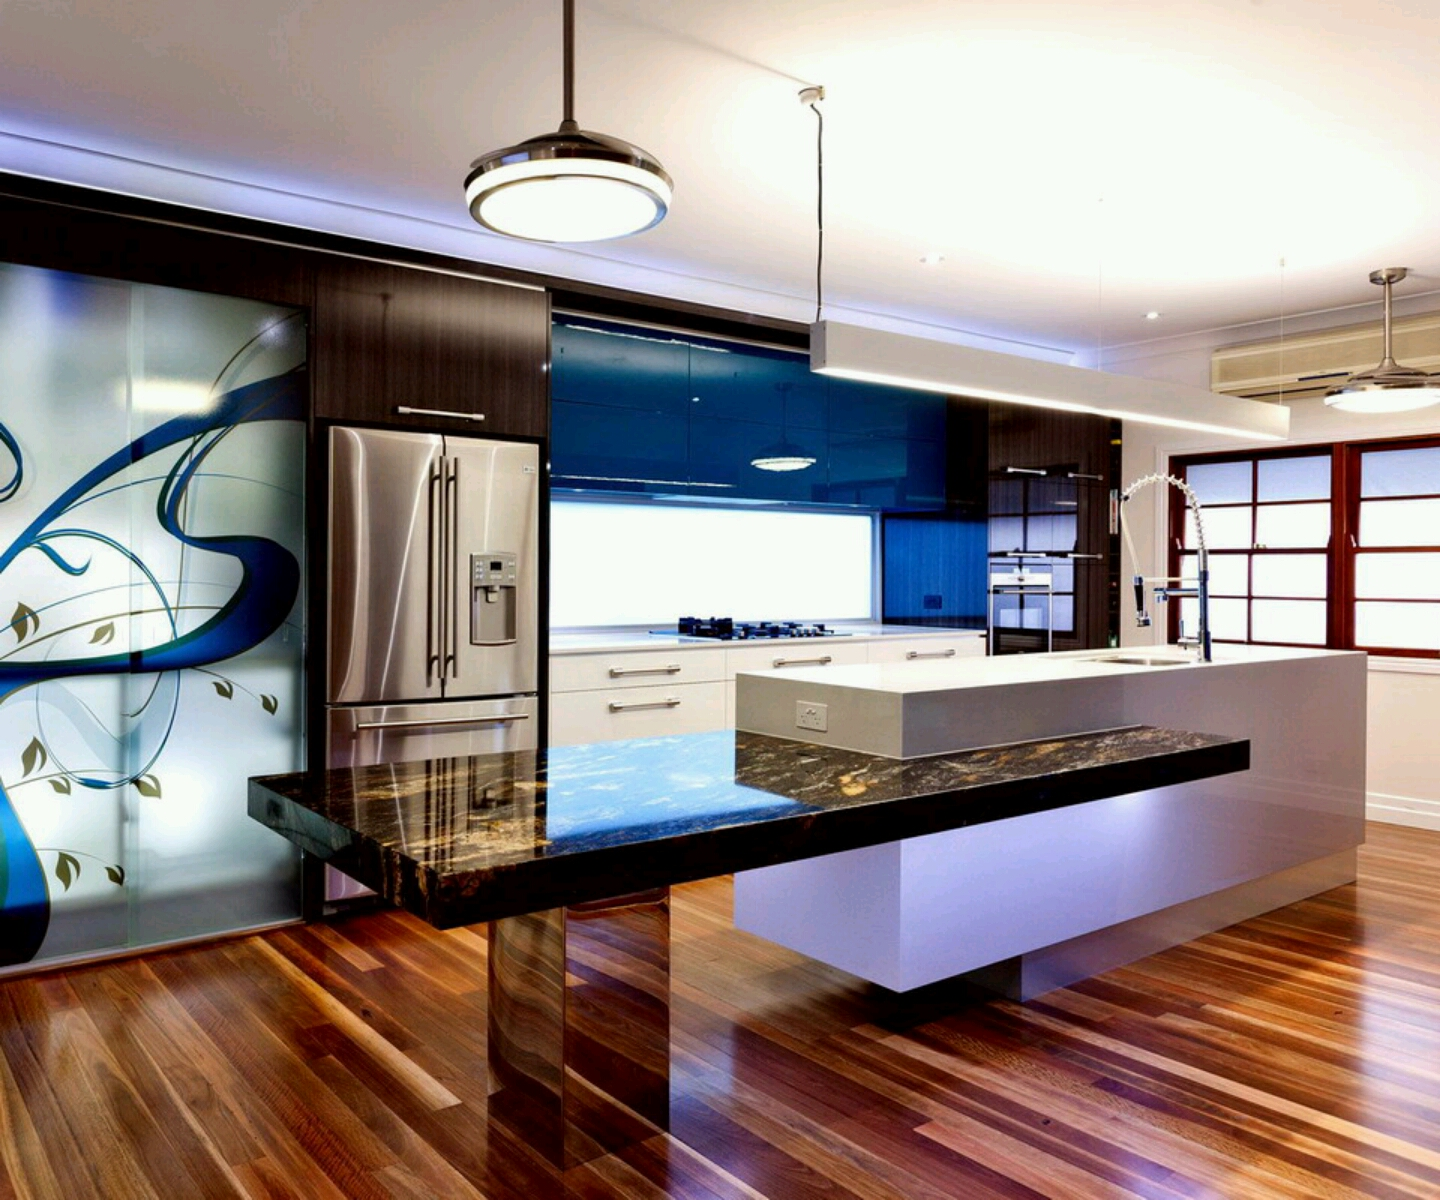 New home designs latest ultra modern kitchen designs ideas for Kitchen contemporary style